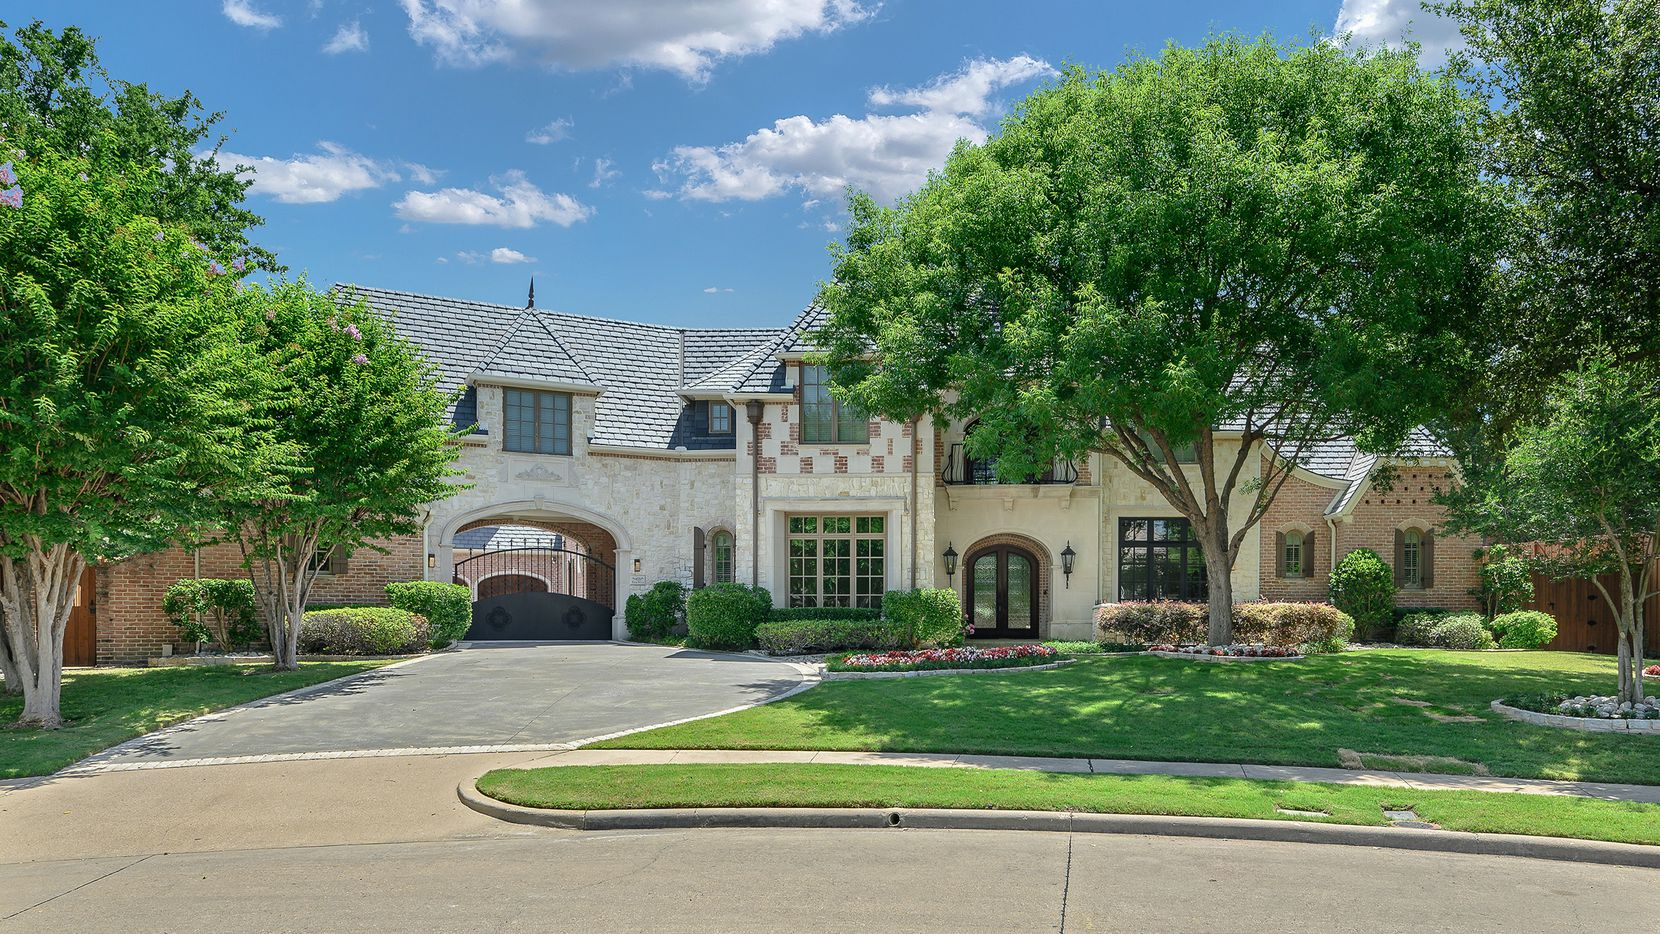 The estate at 4008 Wishing Well Lane in Dallas is listed at $1,699,000. Amenities include a pool and spa, gated porte-cochere with a basketball area and Tesla charging station.